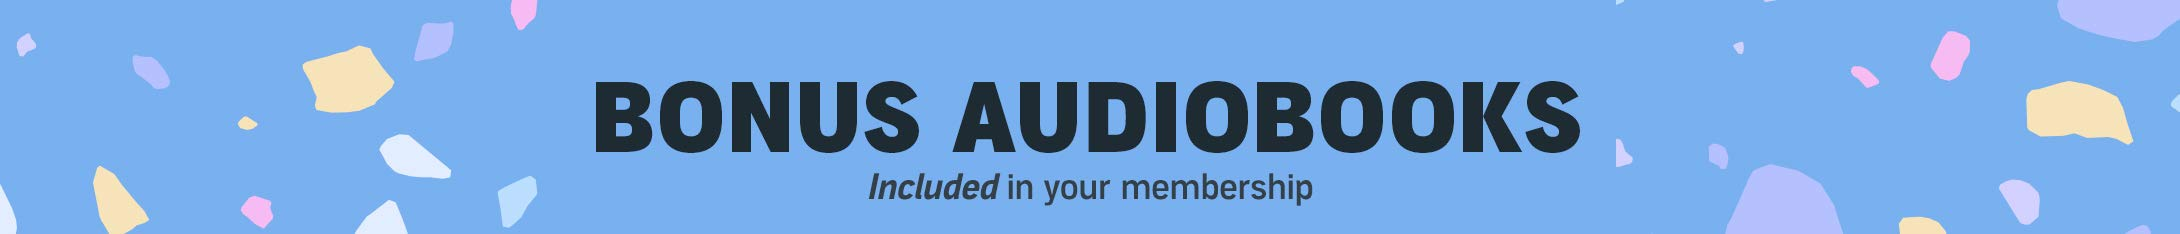 Bonus Audiobooks - Included in your membership.